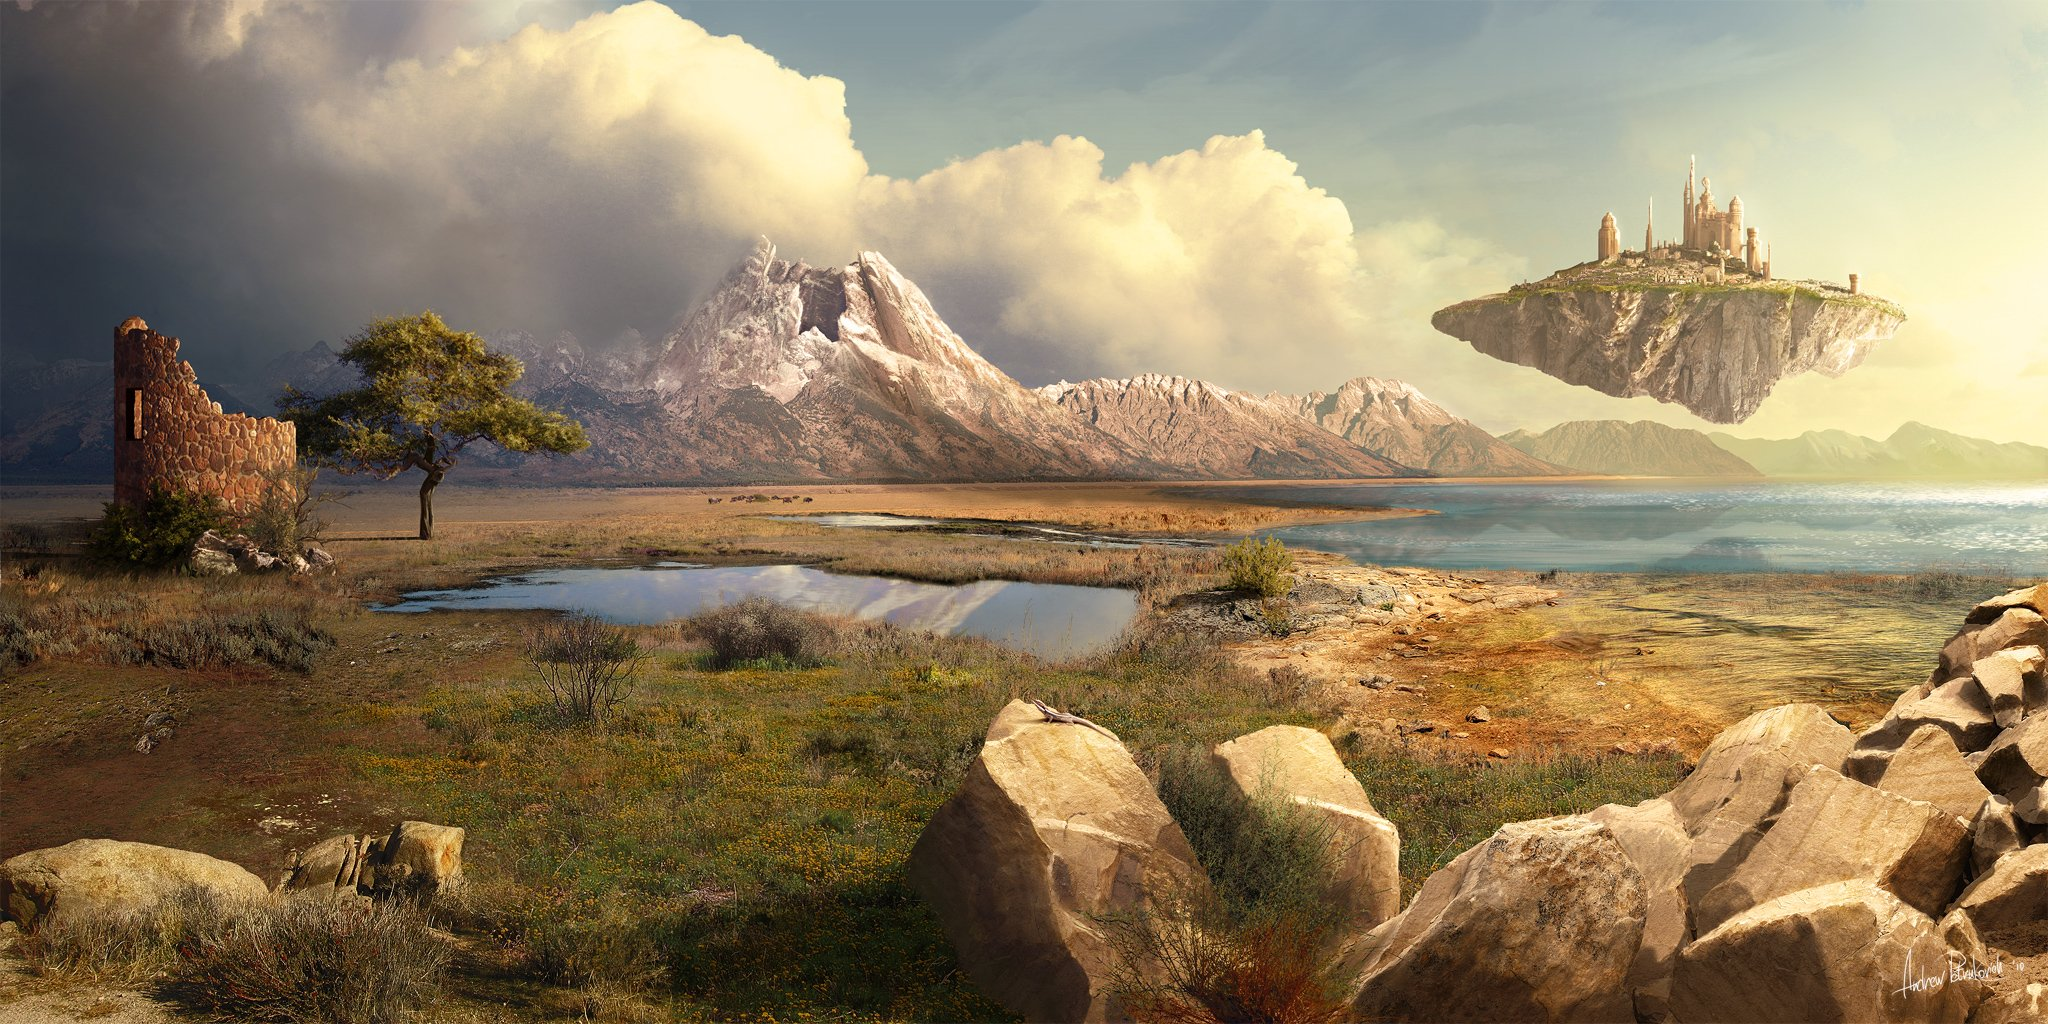 Matte Painting Wallpapers   HD Wallpapers Backgrounds of Your Choice 2048x1024